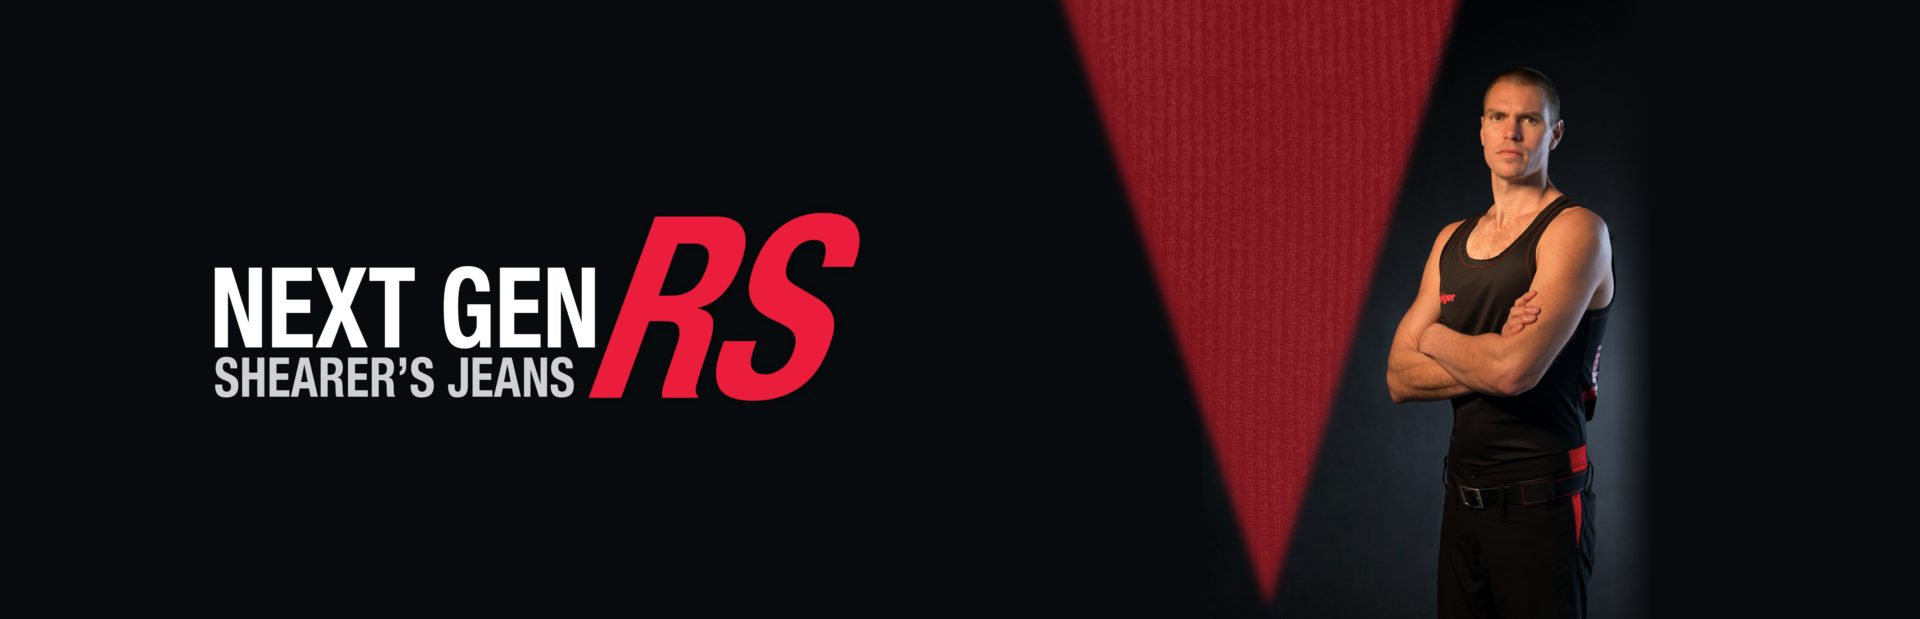 Next Gen Jeans Rs Website Banner 31